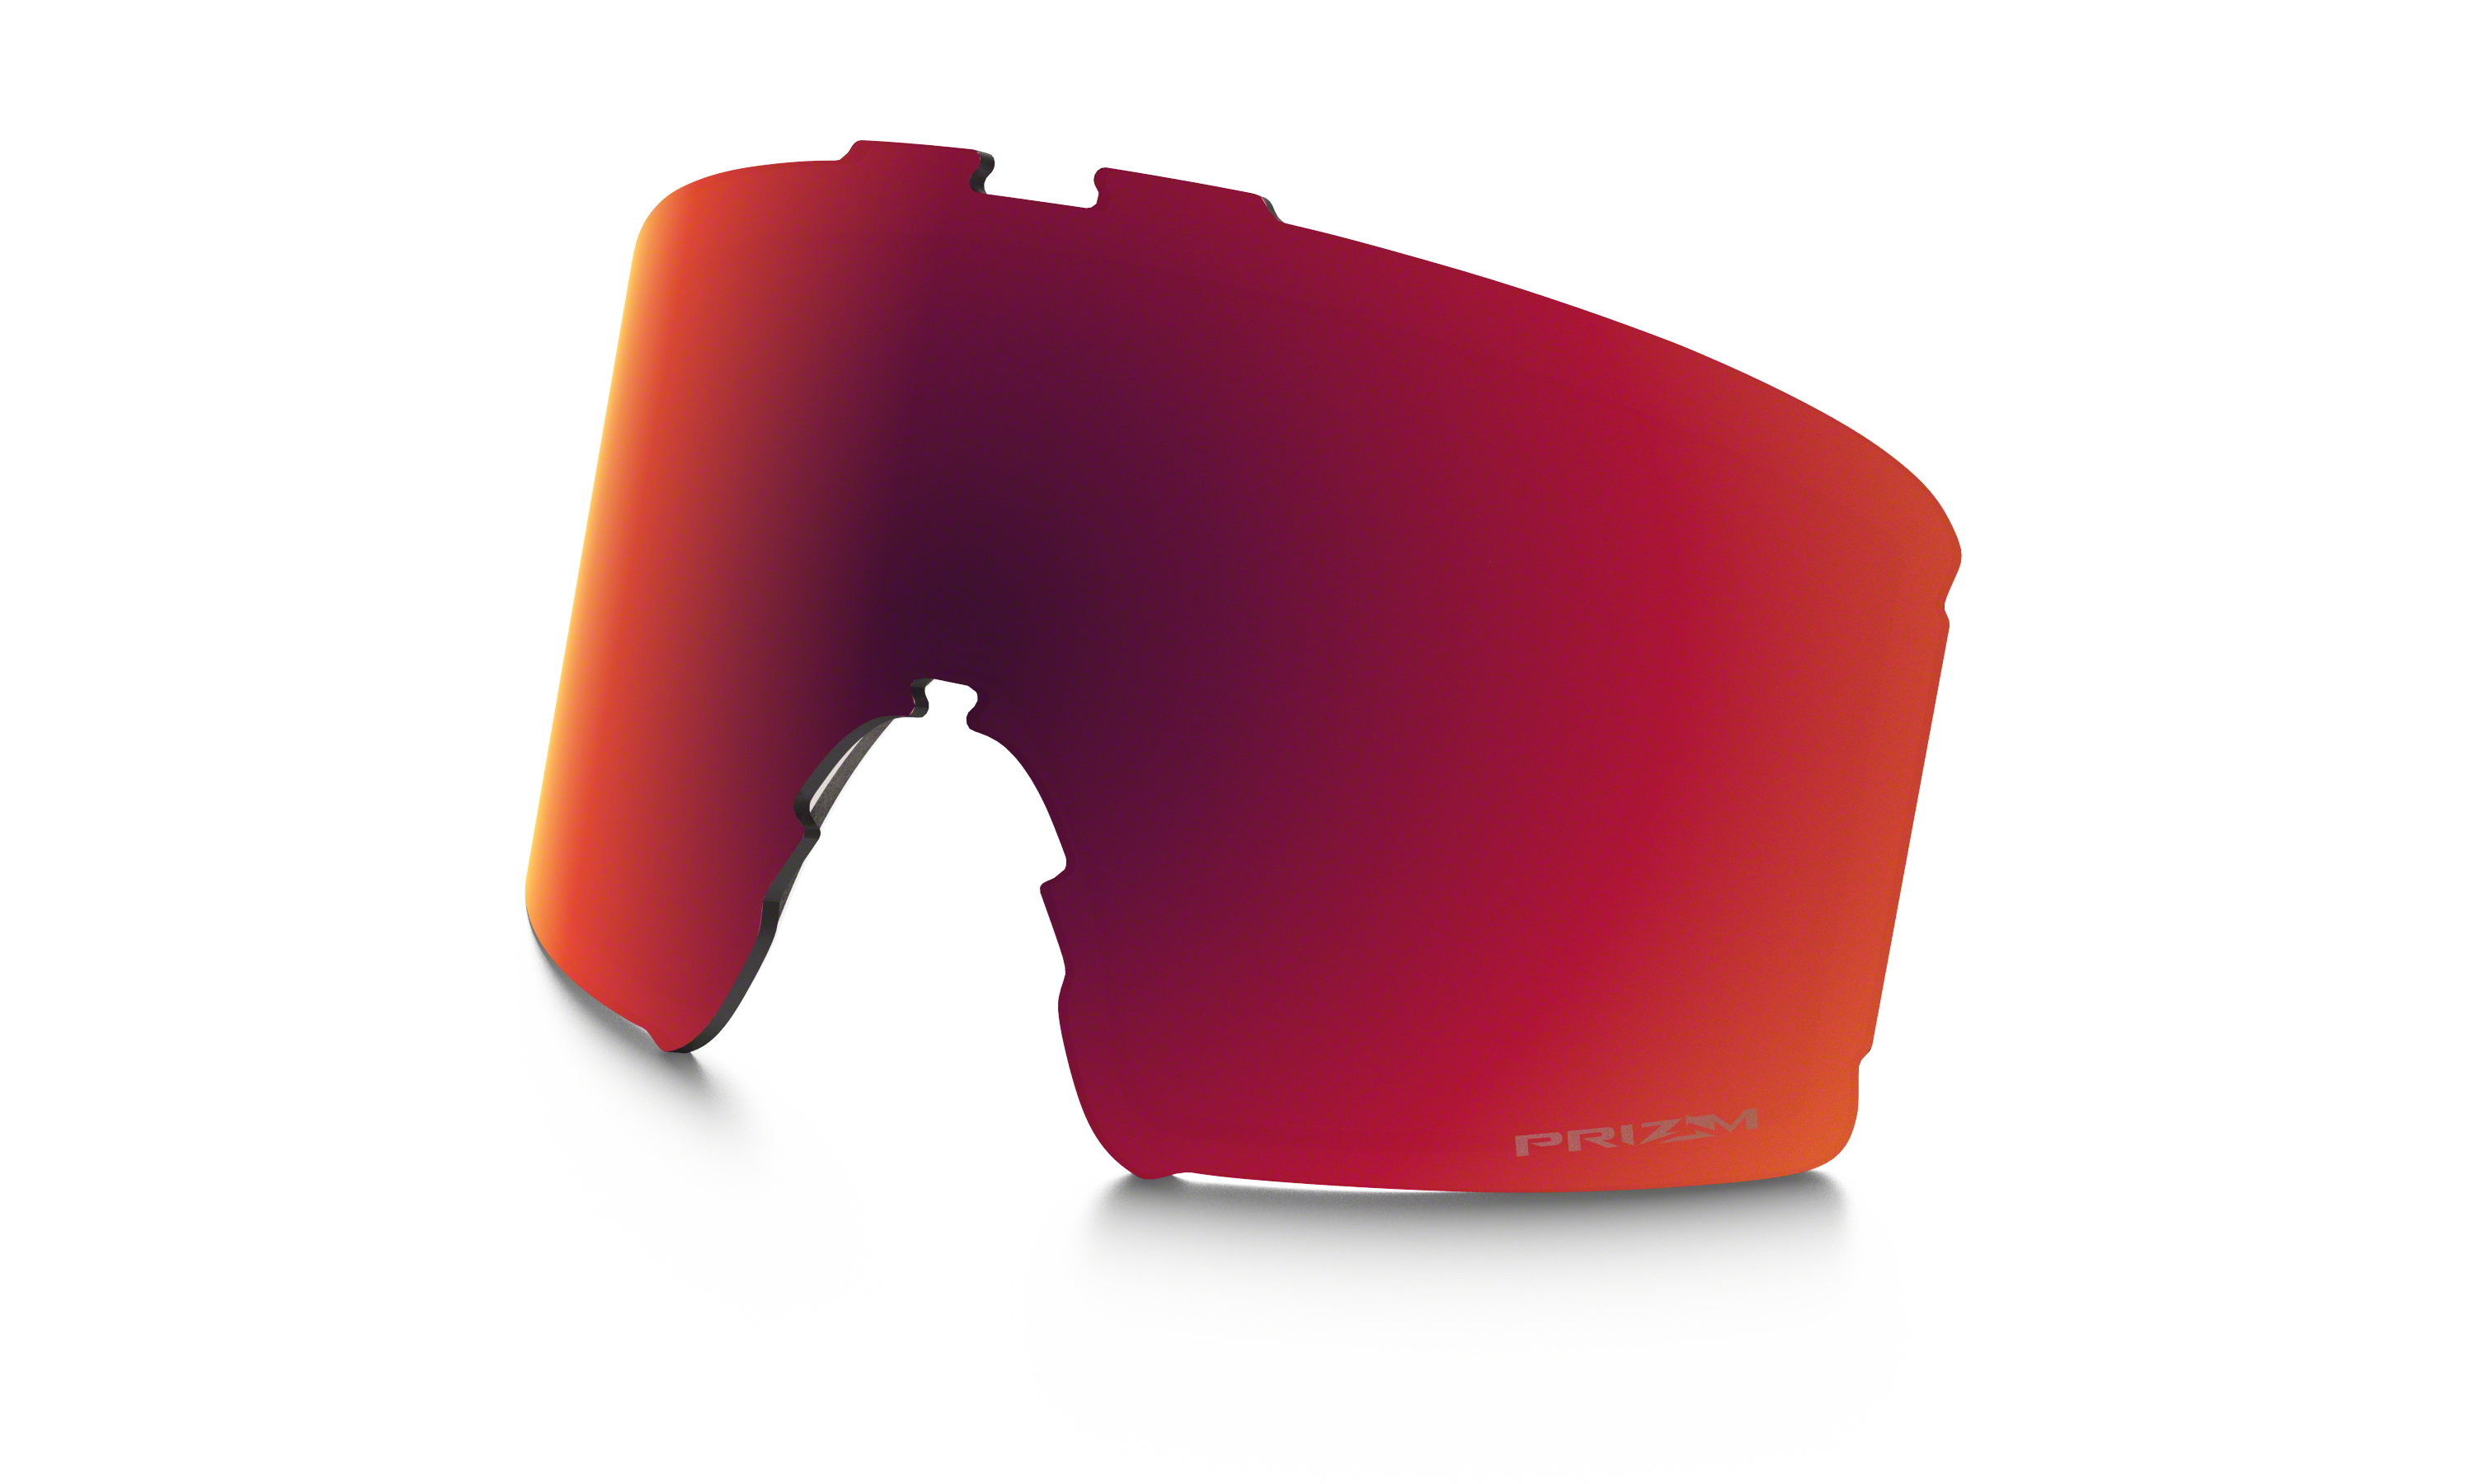 main_101-643-009_line-miner-snow-replacement-lens_prizm-torch_001.png